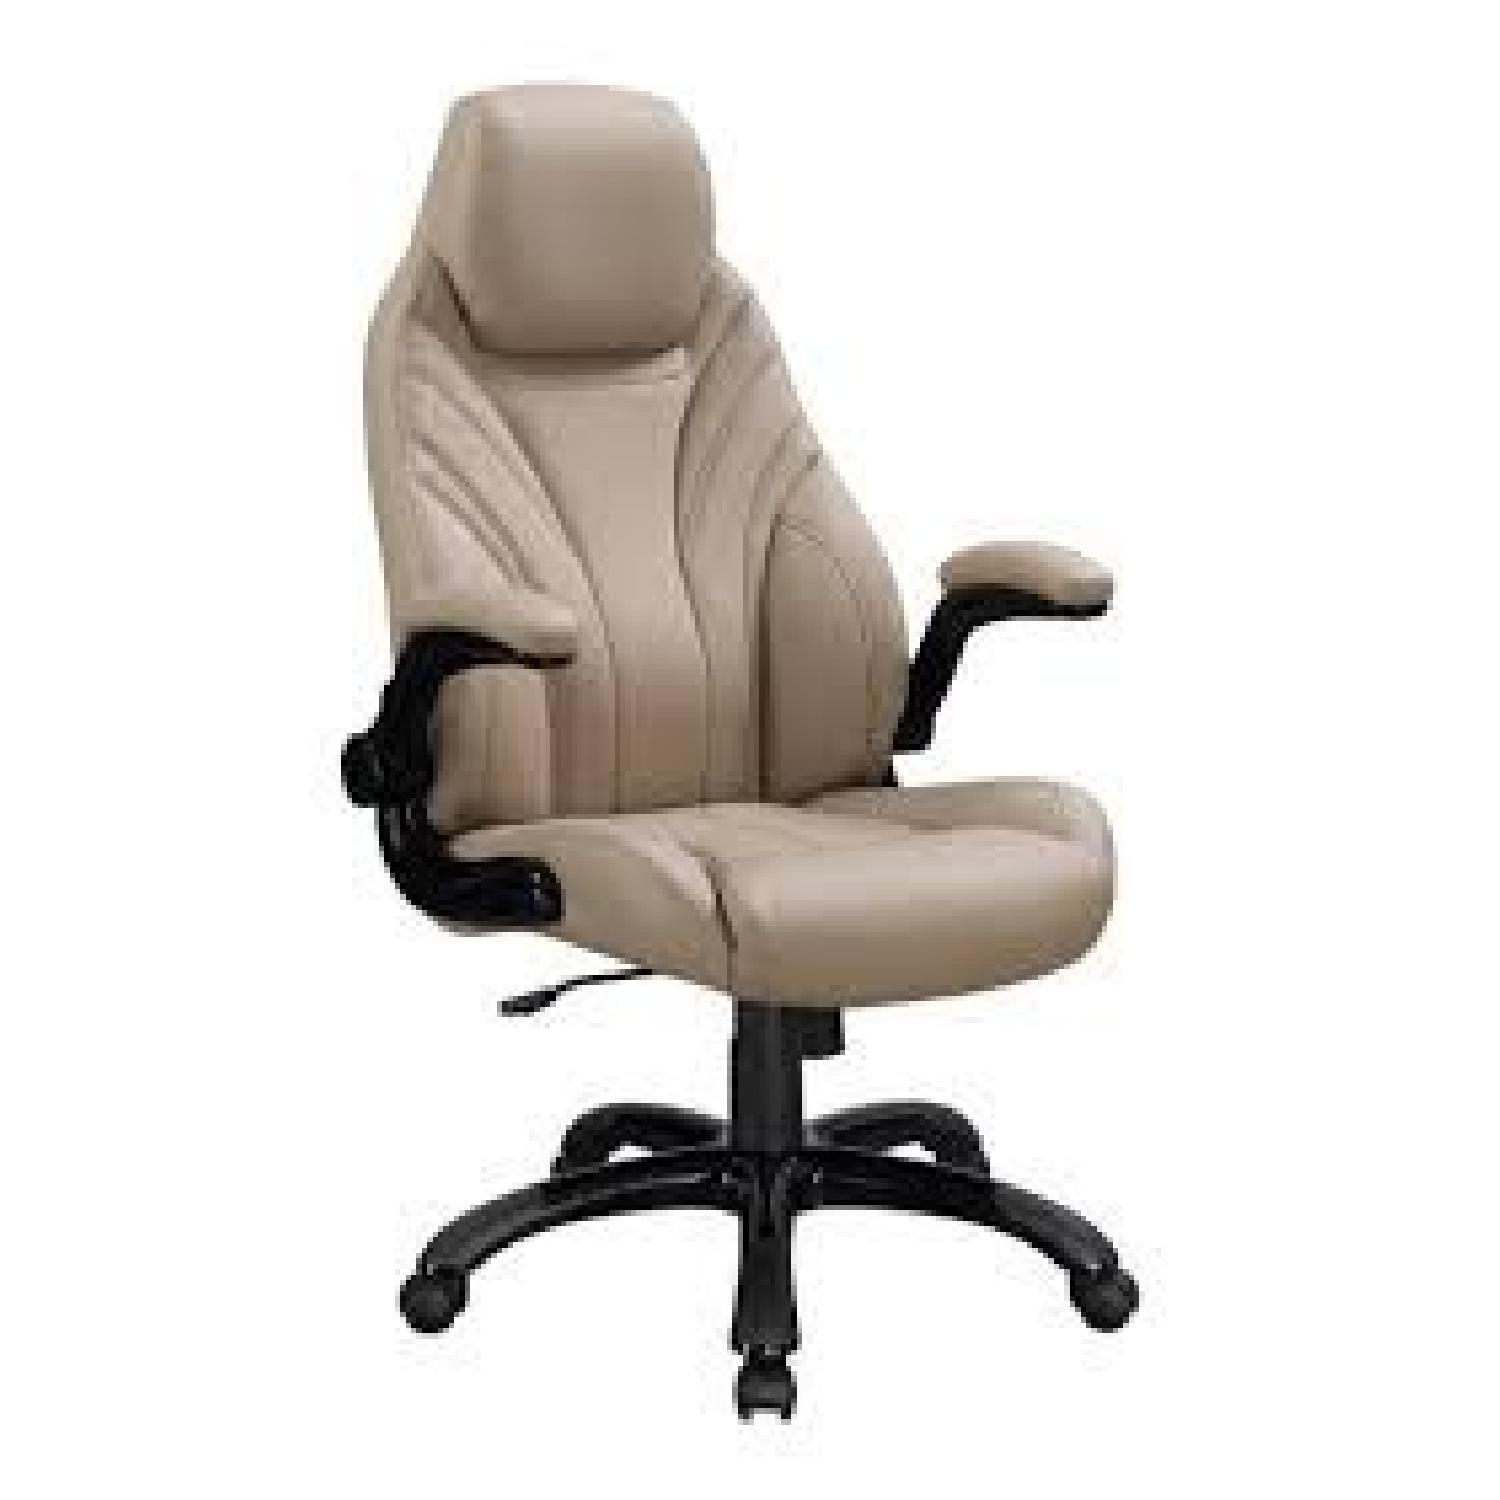 High-Back Leatherette Executive Office Chair in Tan